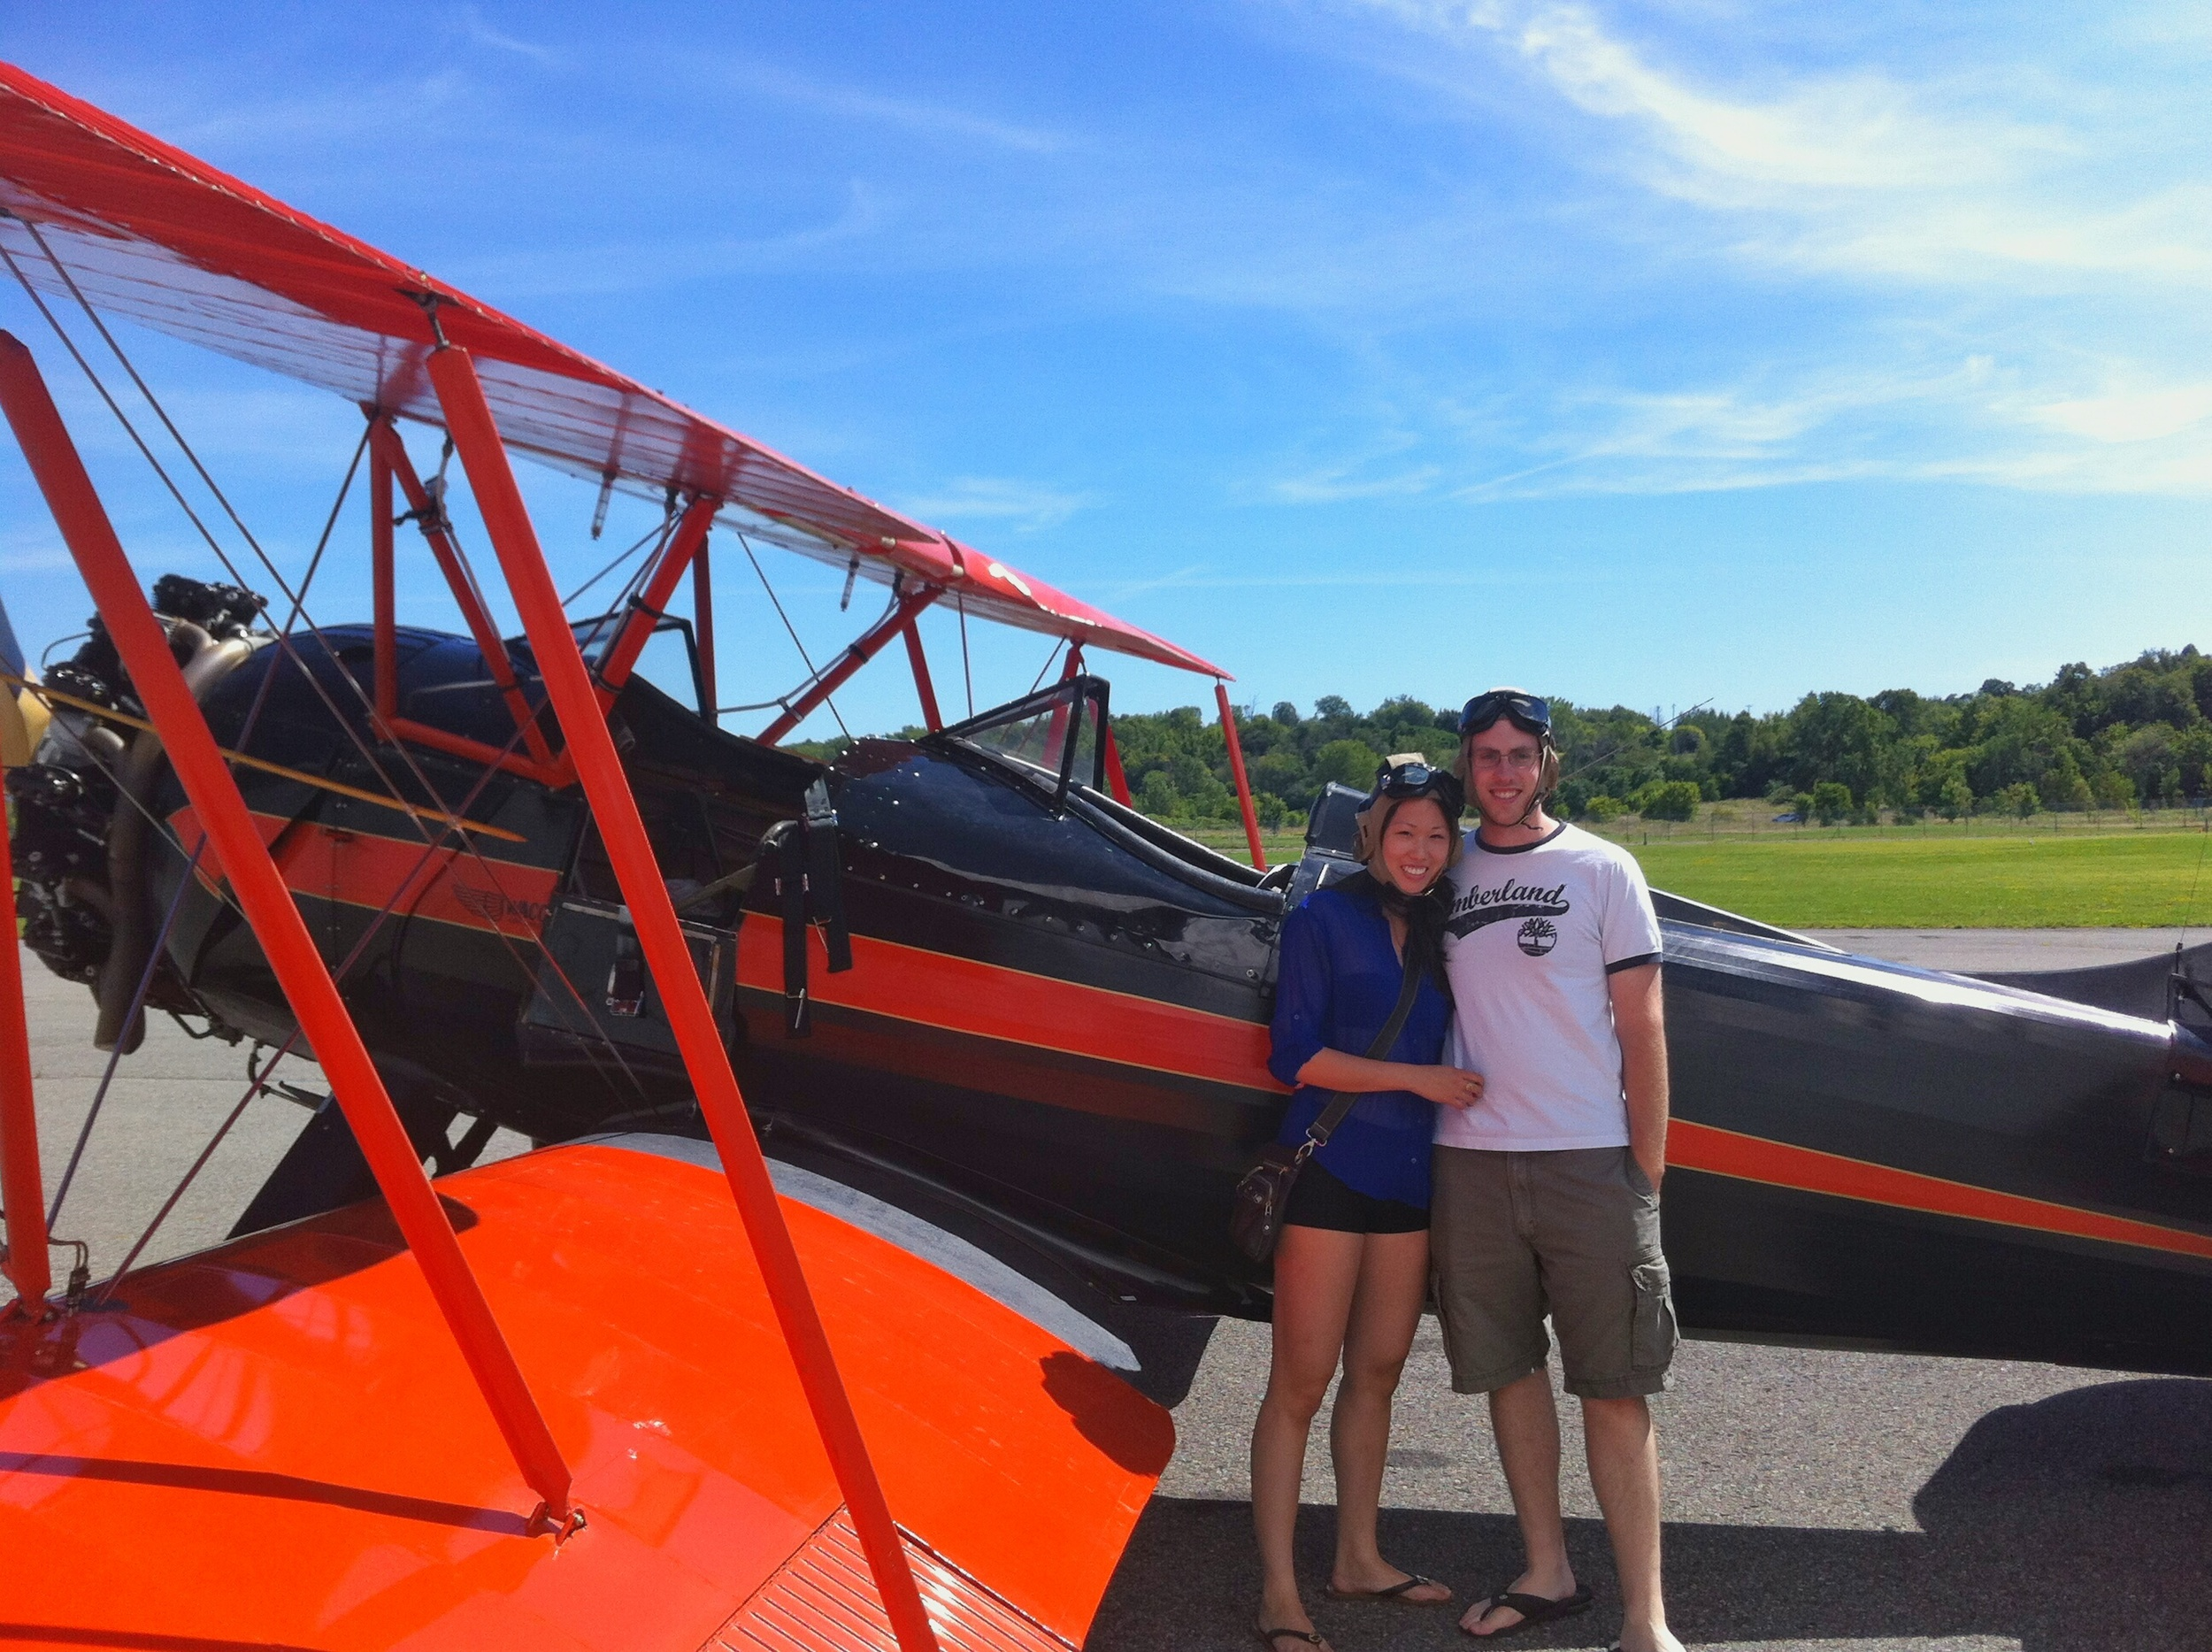 Another birthday surprise for Matt in 2013 - A ride in a 1939 circa open cock pit biplane at the Aviation Museum in Ottawa.